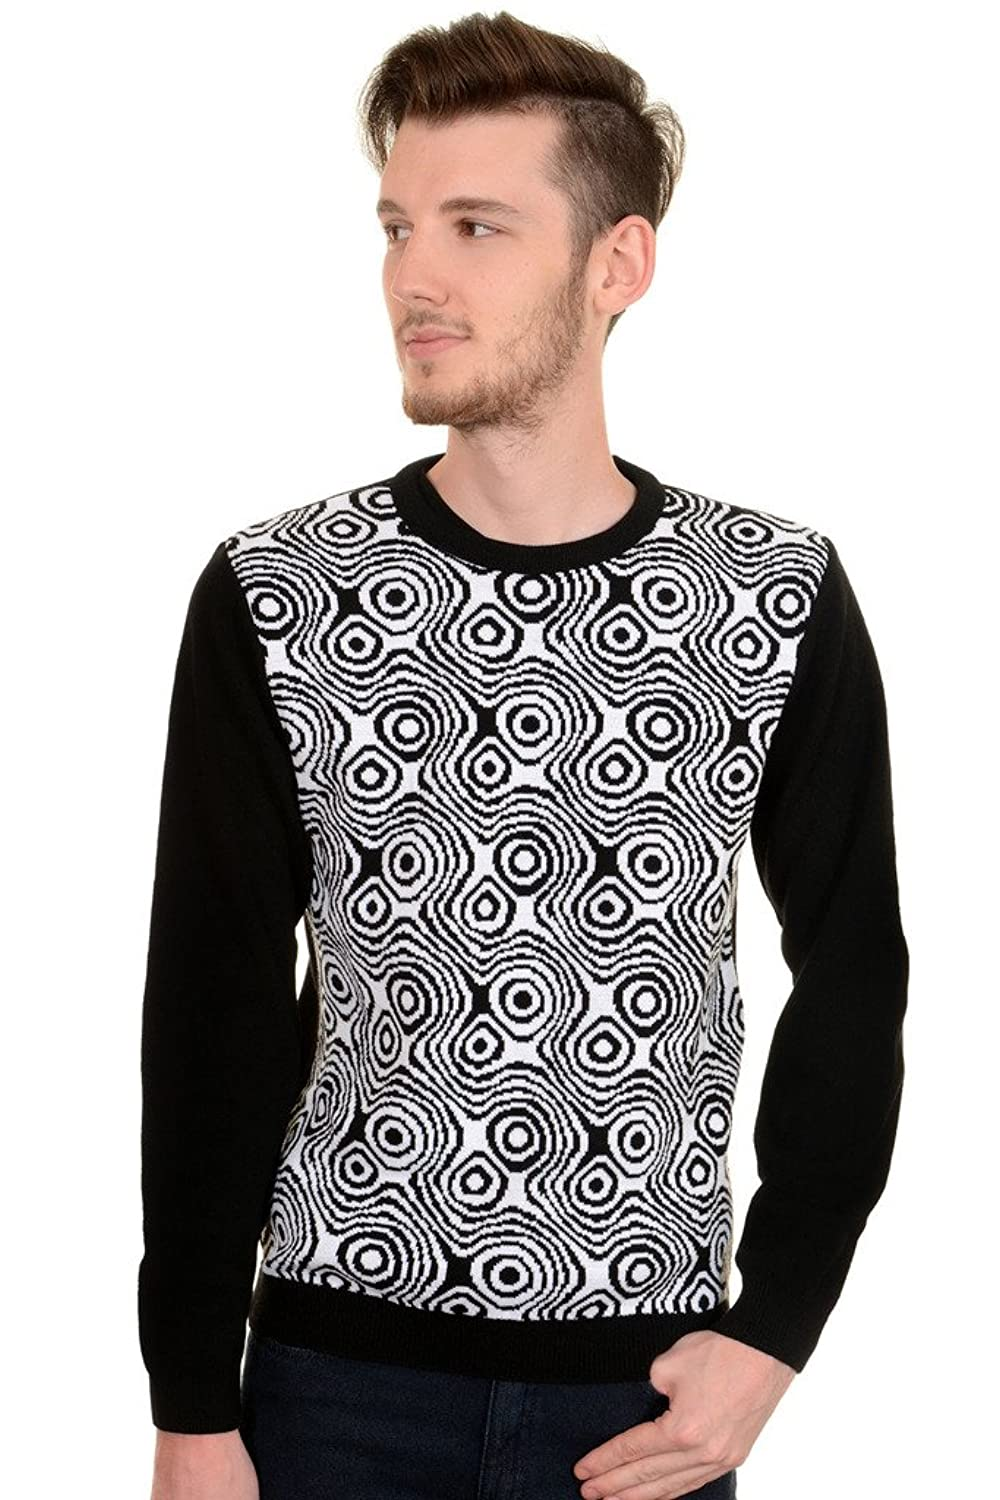 1960s Style Sweaters & Cardigans 60s 70s Vintage Black White Op Art Mod Jumper $39.95 AT vintagedancer.com